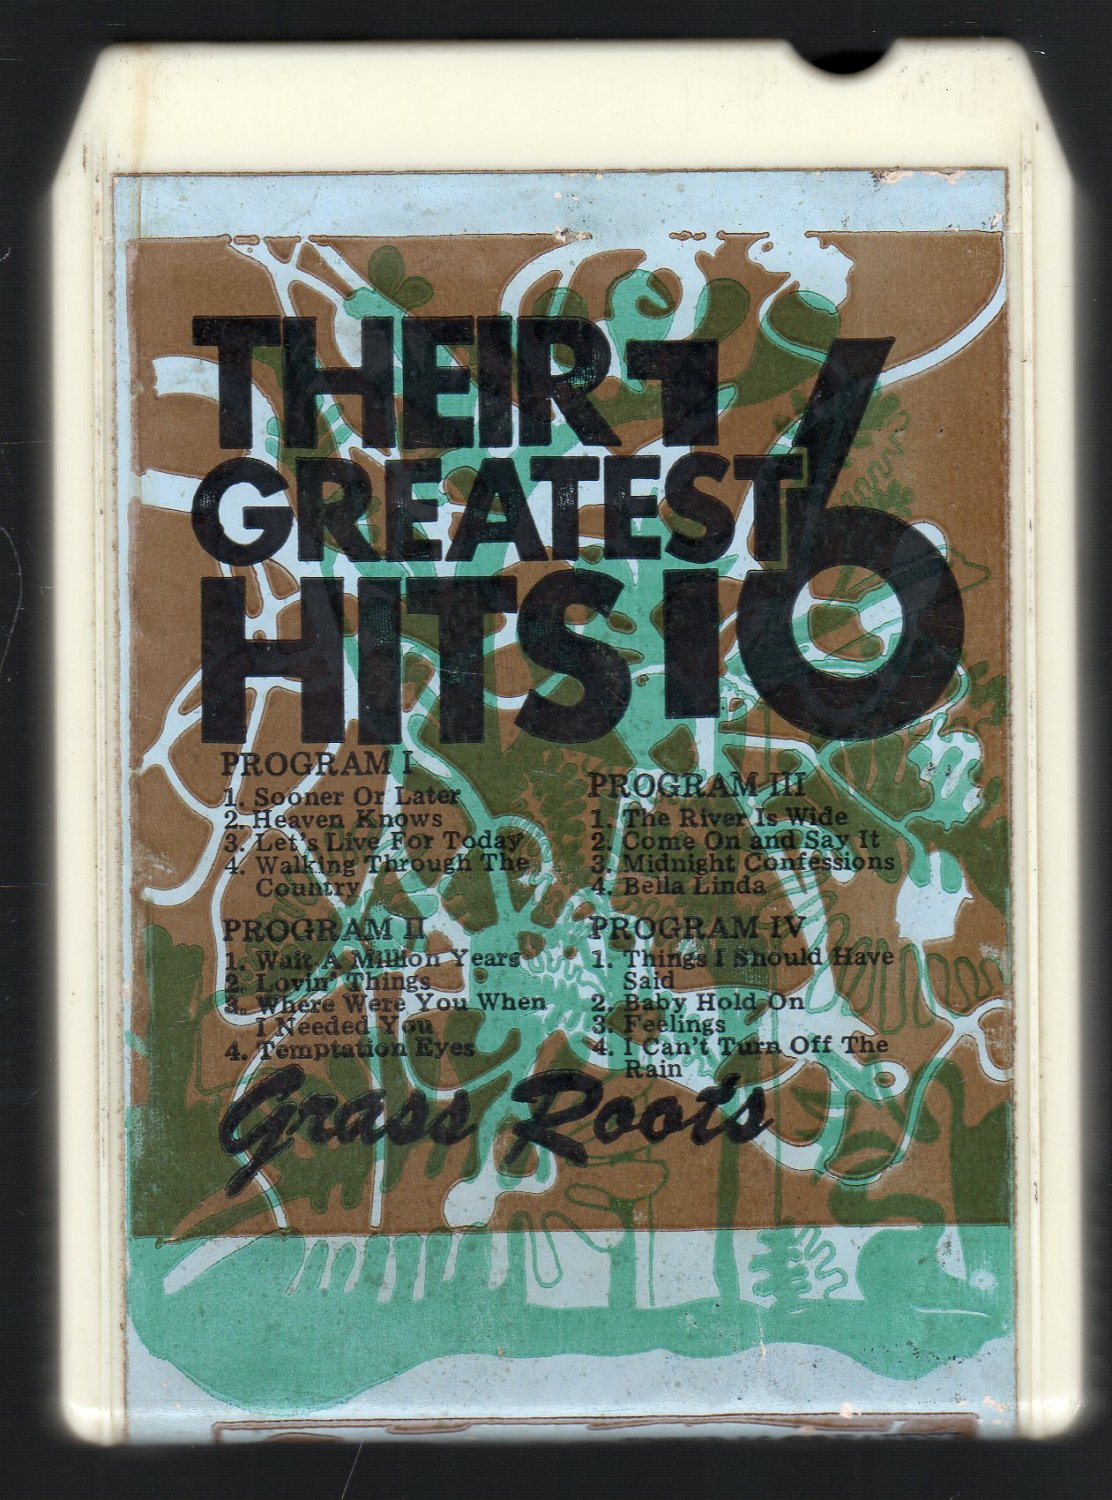 The Grass Roots - Their 16 Greatest Hits ALPINE A52 8-track tape